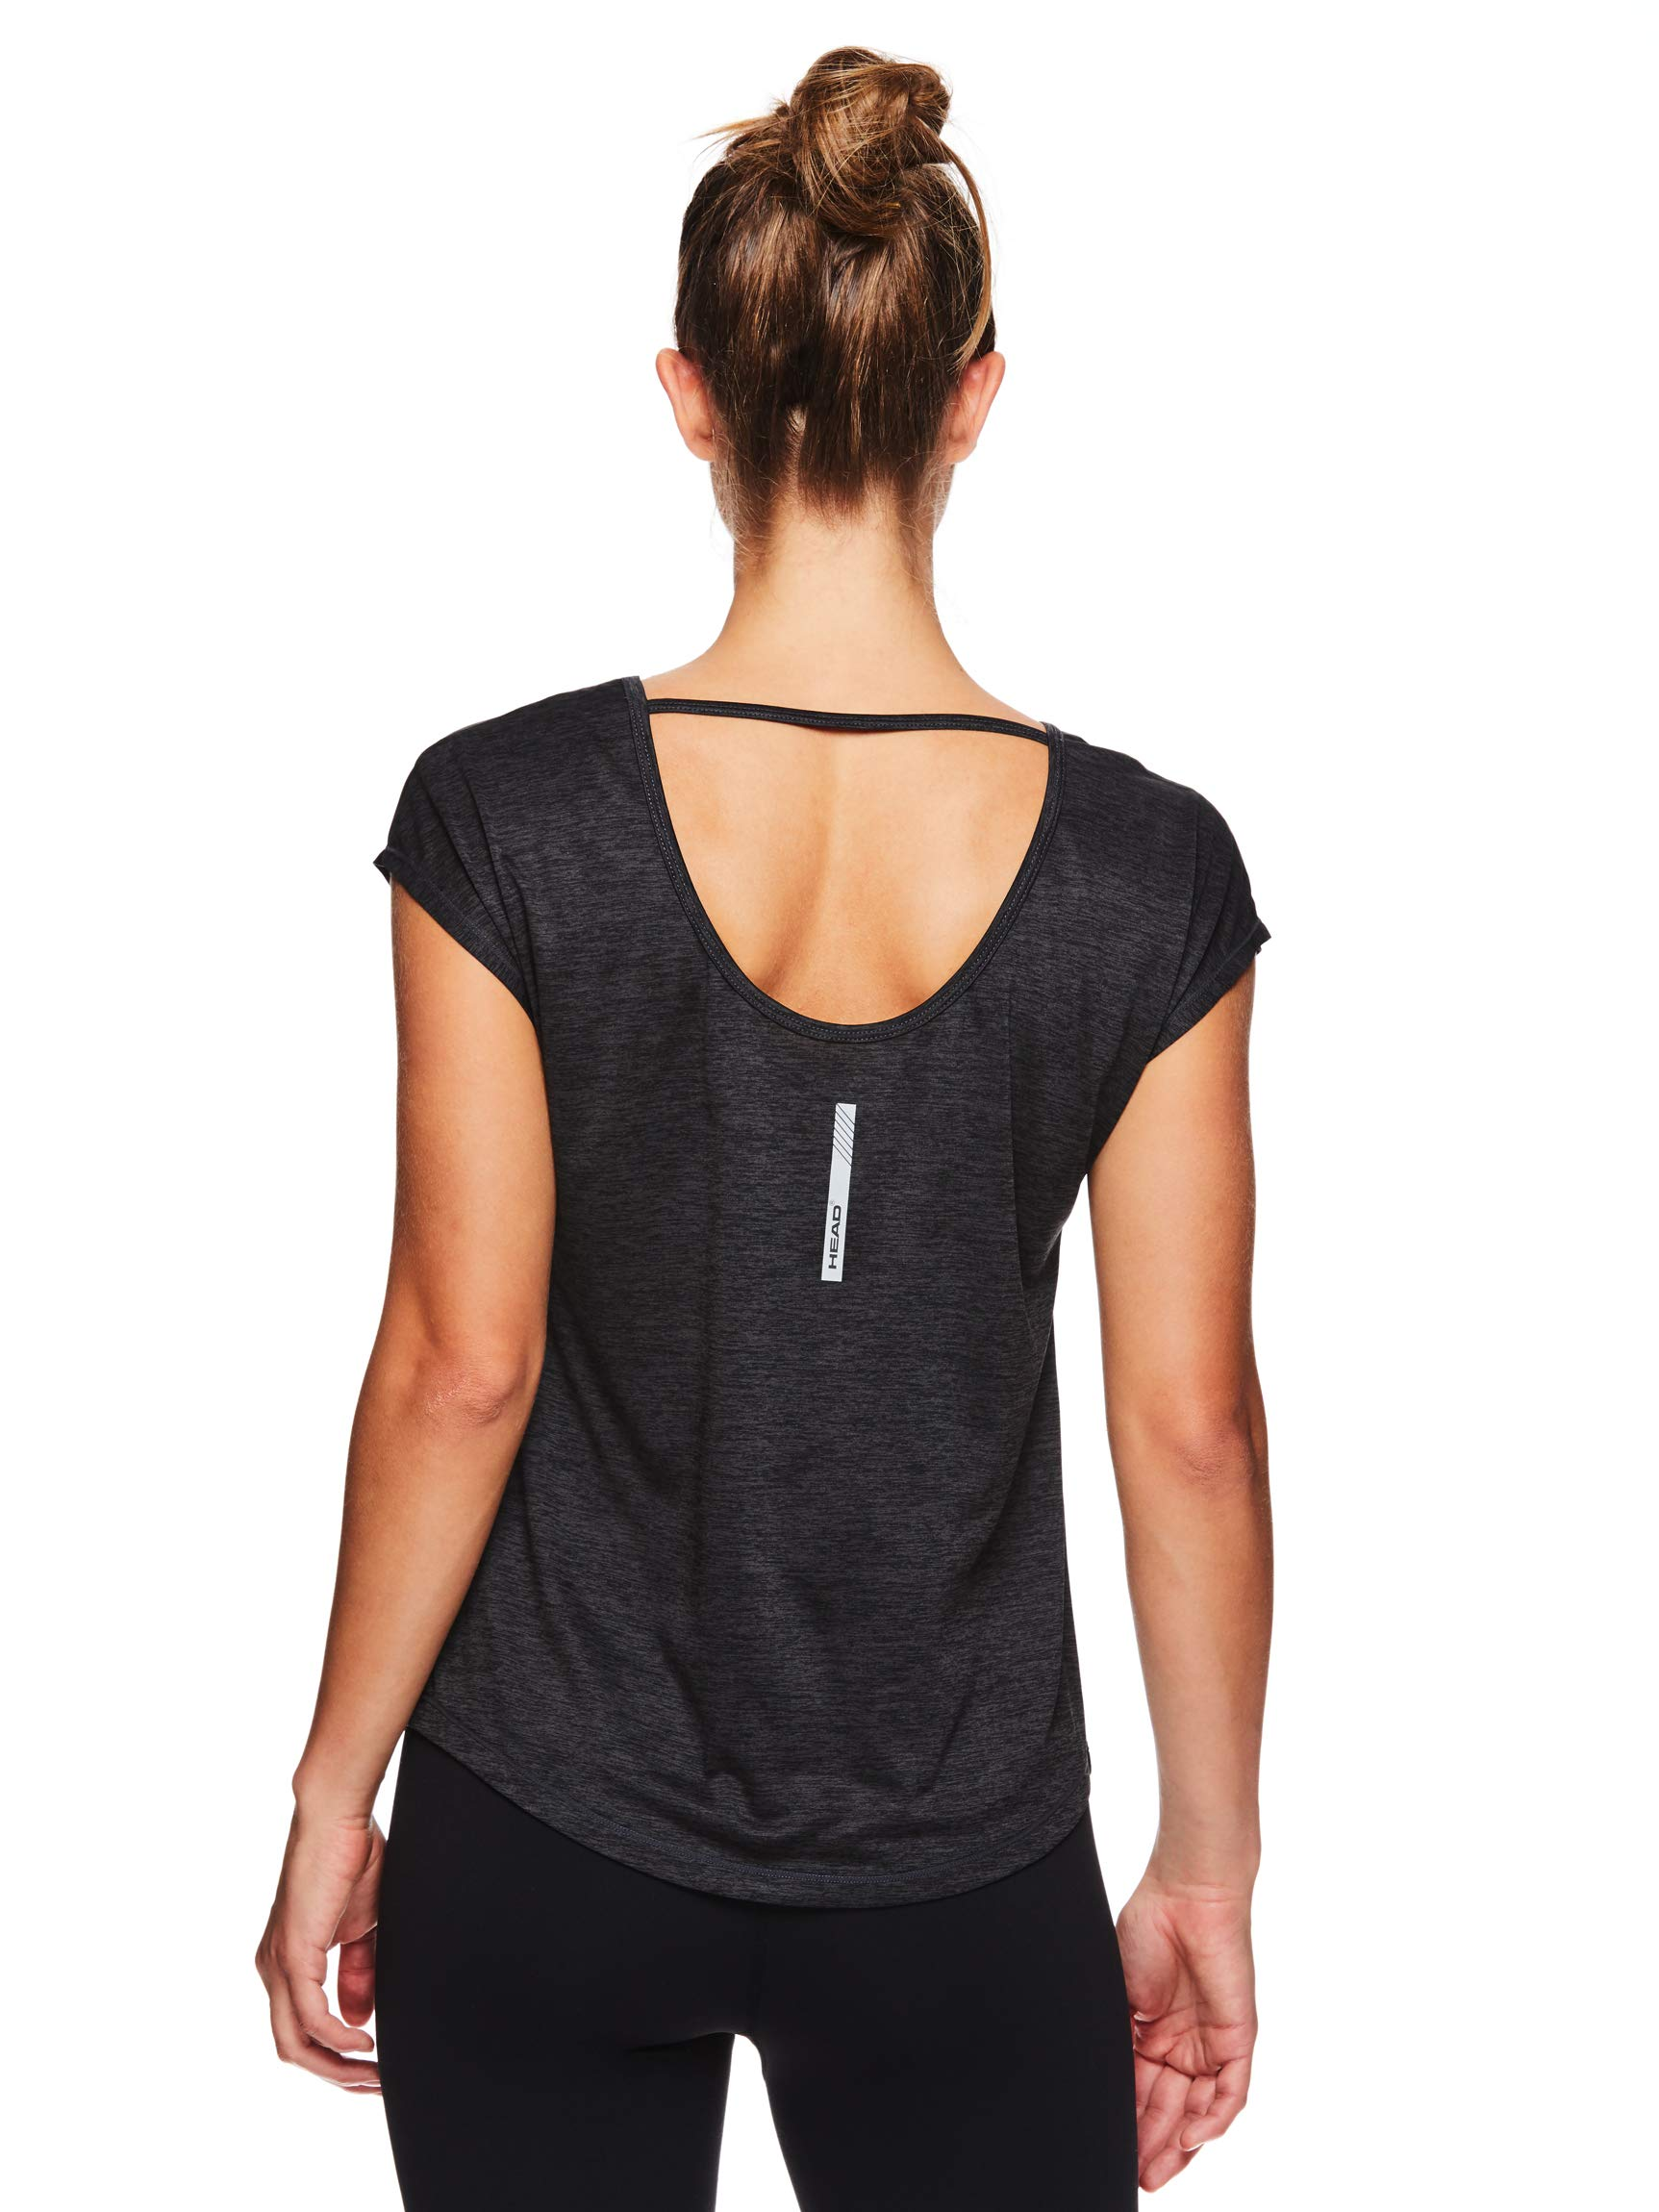 HEAD Women's Open Back Short Sleeve Workout T Shirt - Performance Scoop Neck Activewear Top - Black Heather, Large